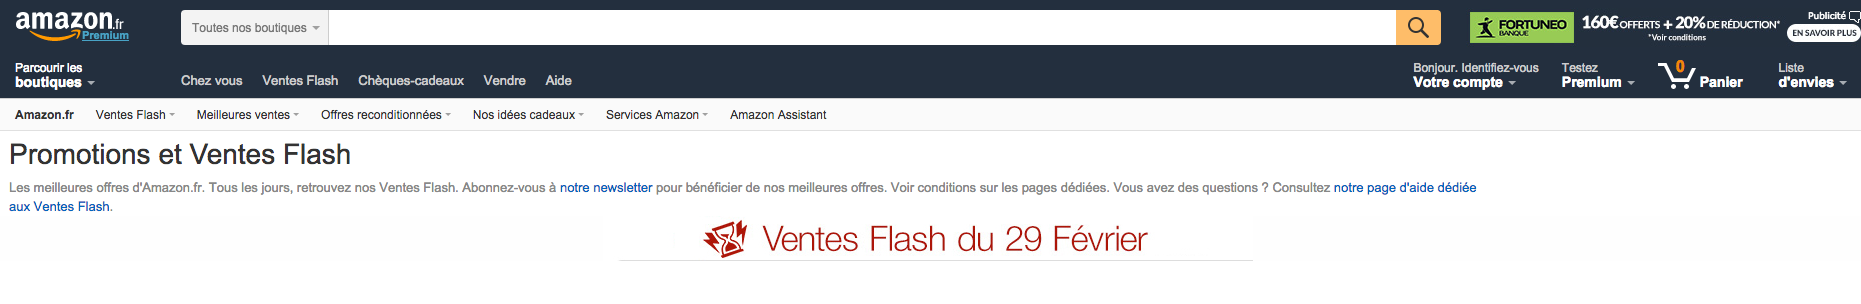 amazon hootsuite 29 fevrier